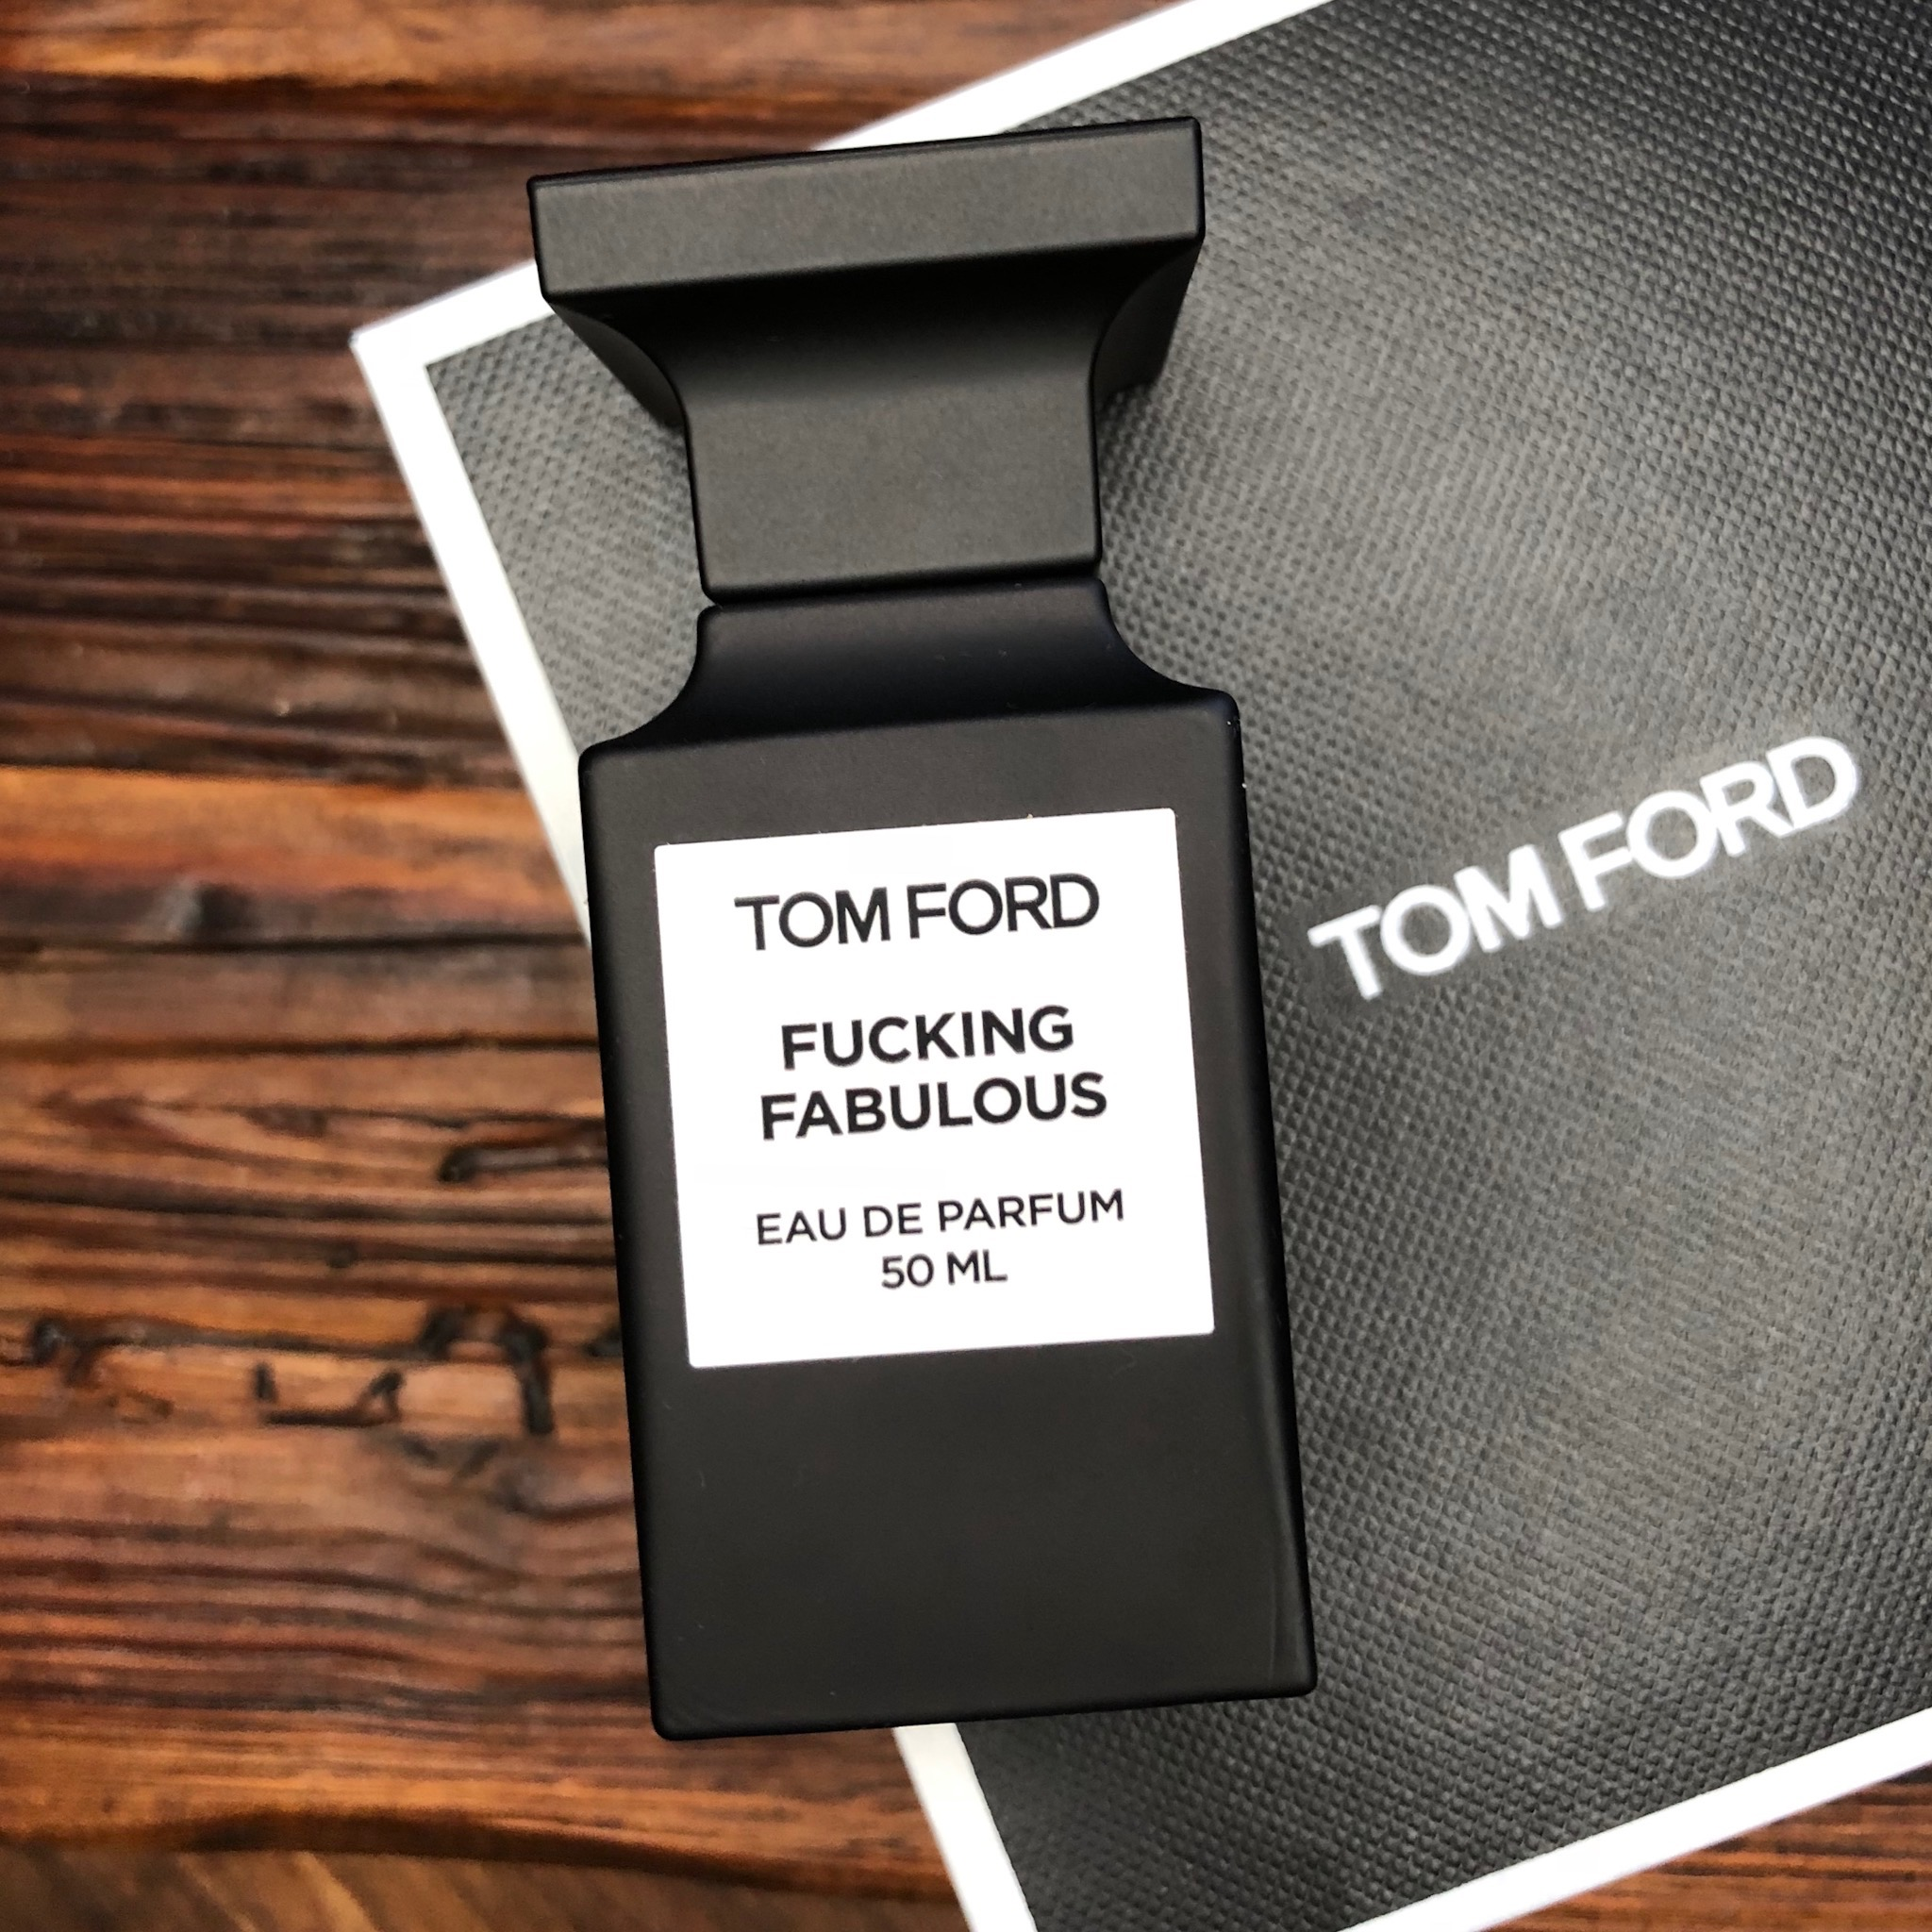 Tom Ford, Fucking Fabulous